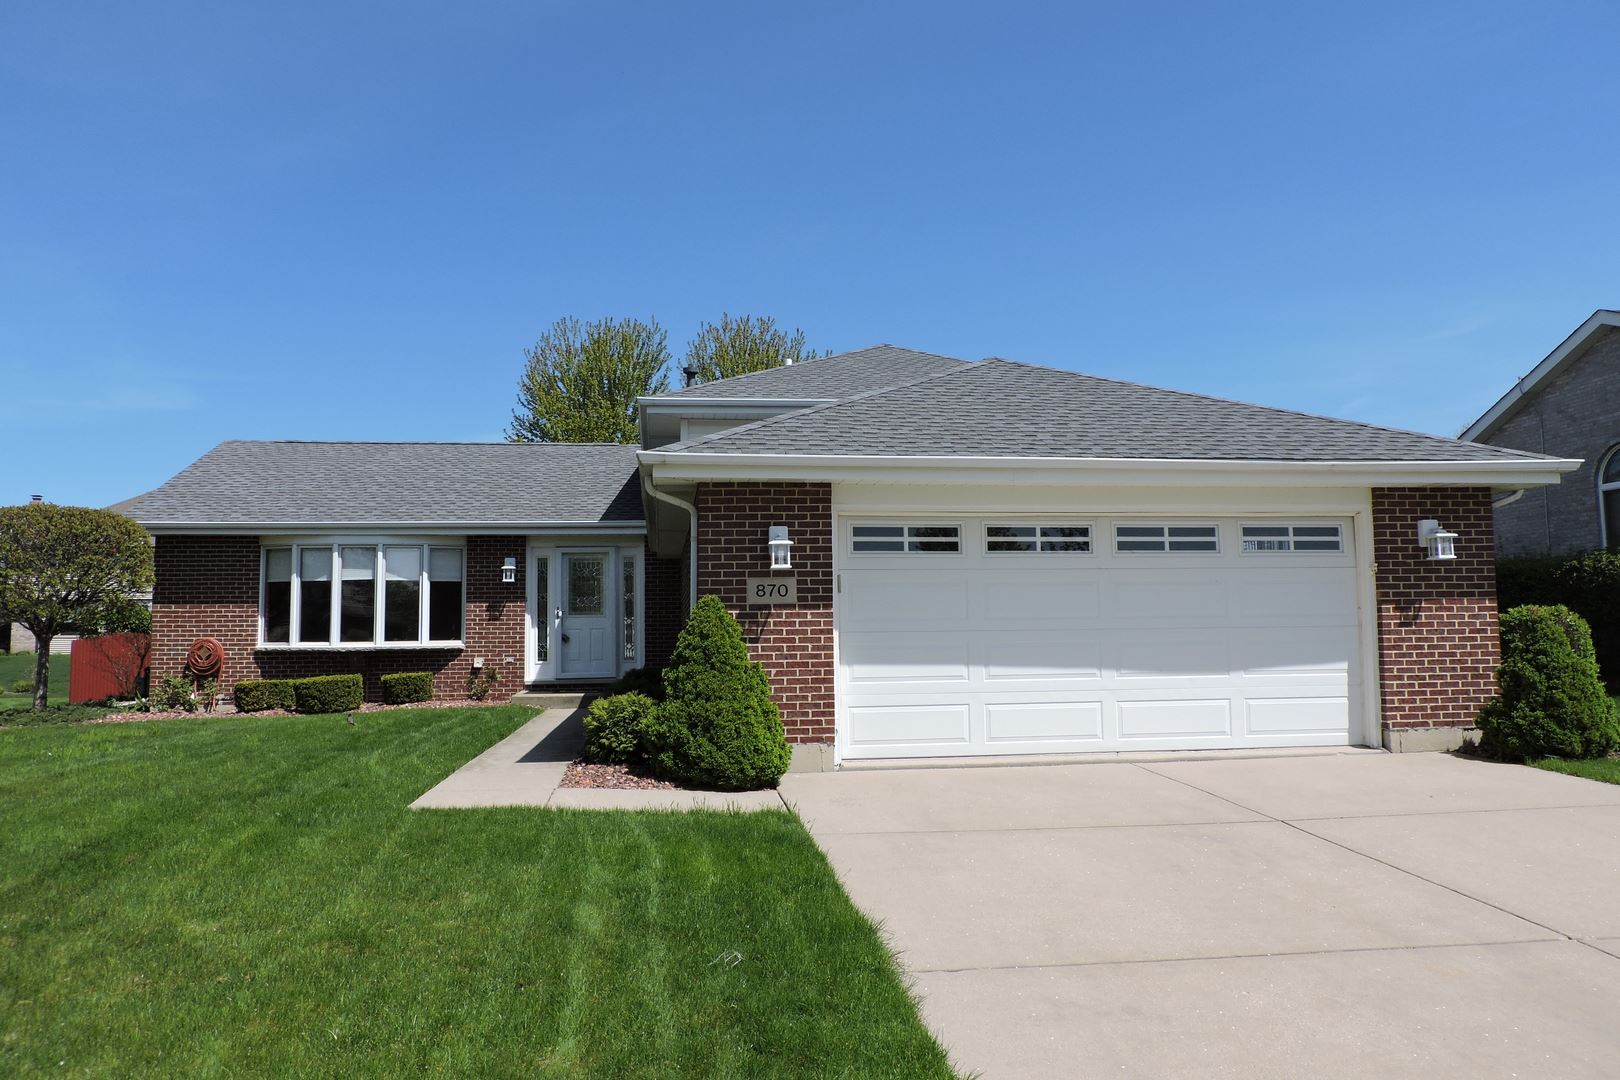 870 Belot Lane, New Lenox, IL 60451 - #: 10735581